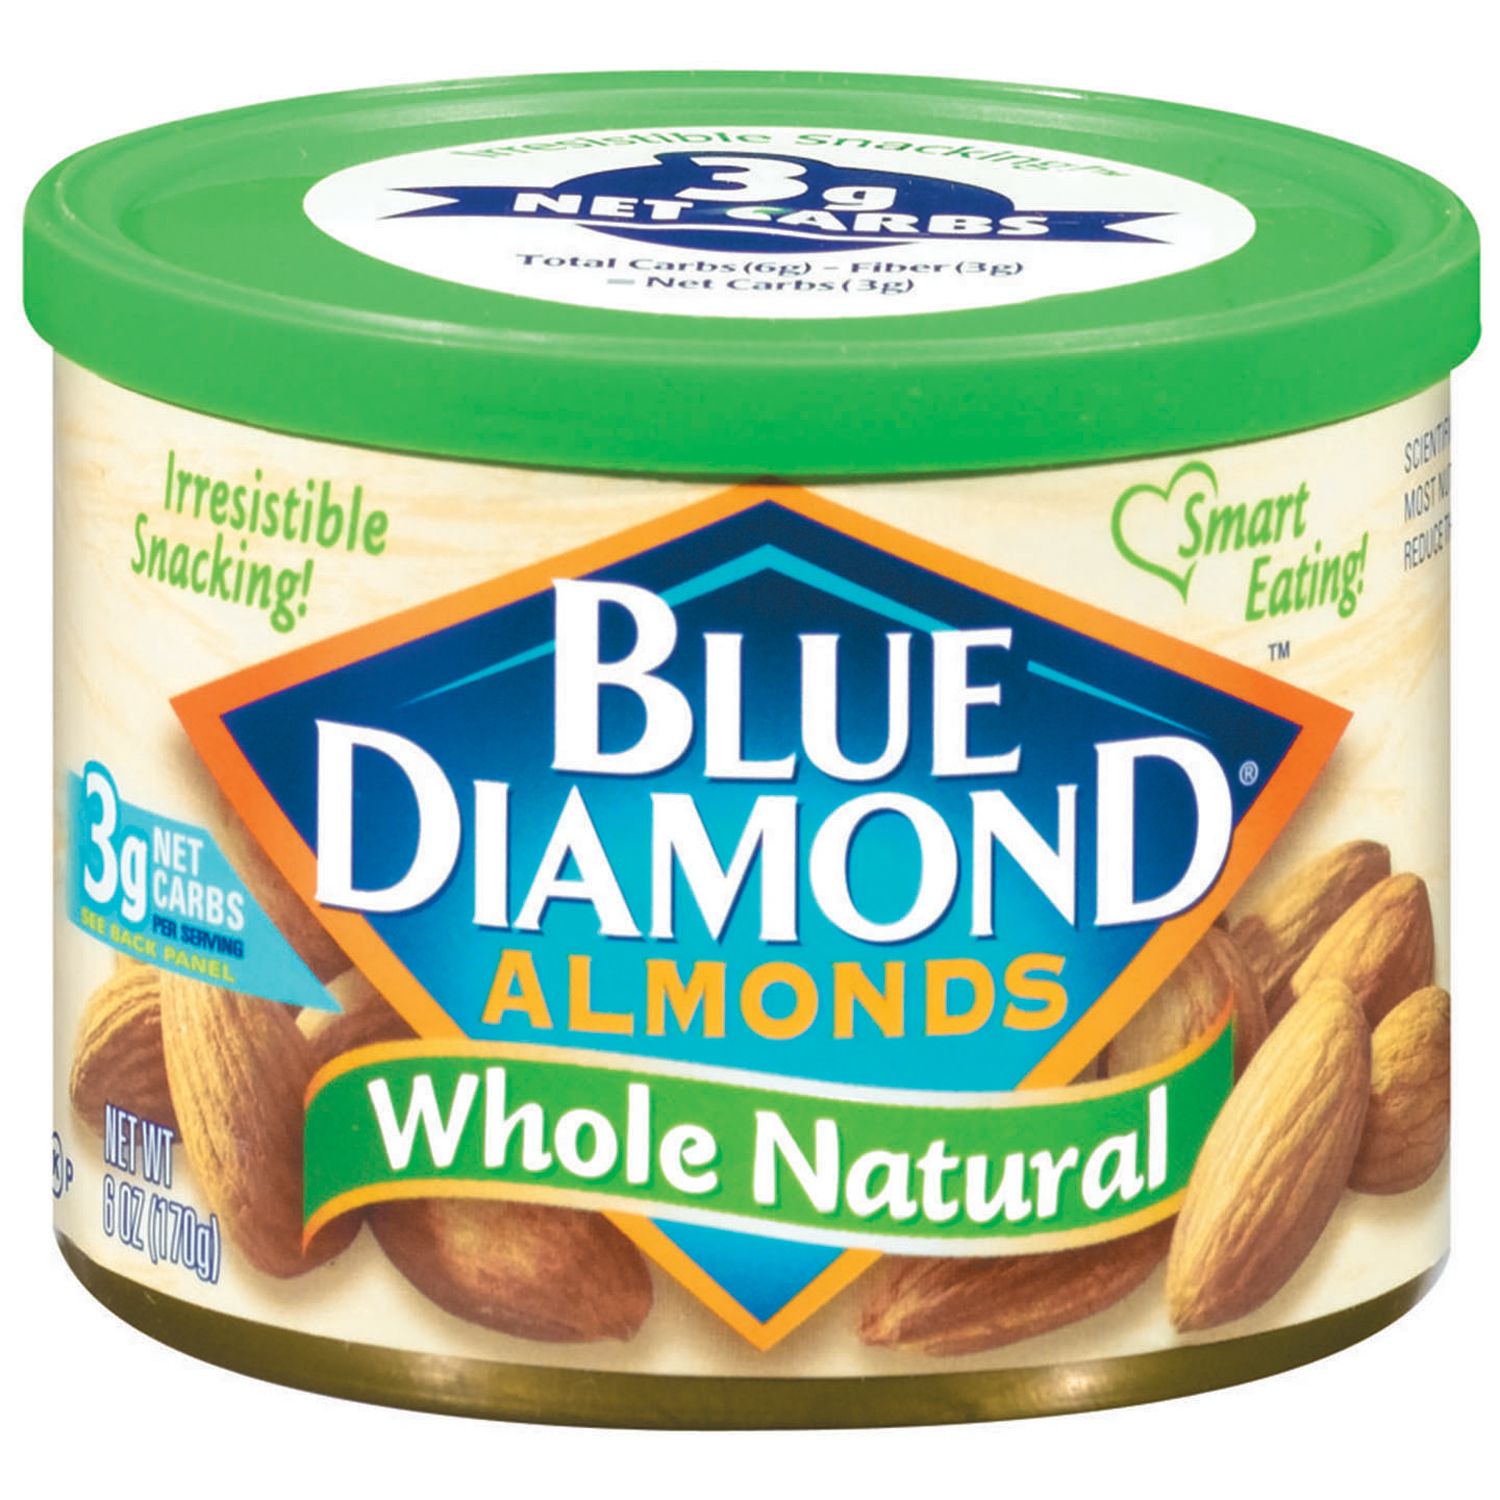 Blue Diamond�� Whole Natural Almonds 6 oz. Canister